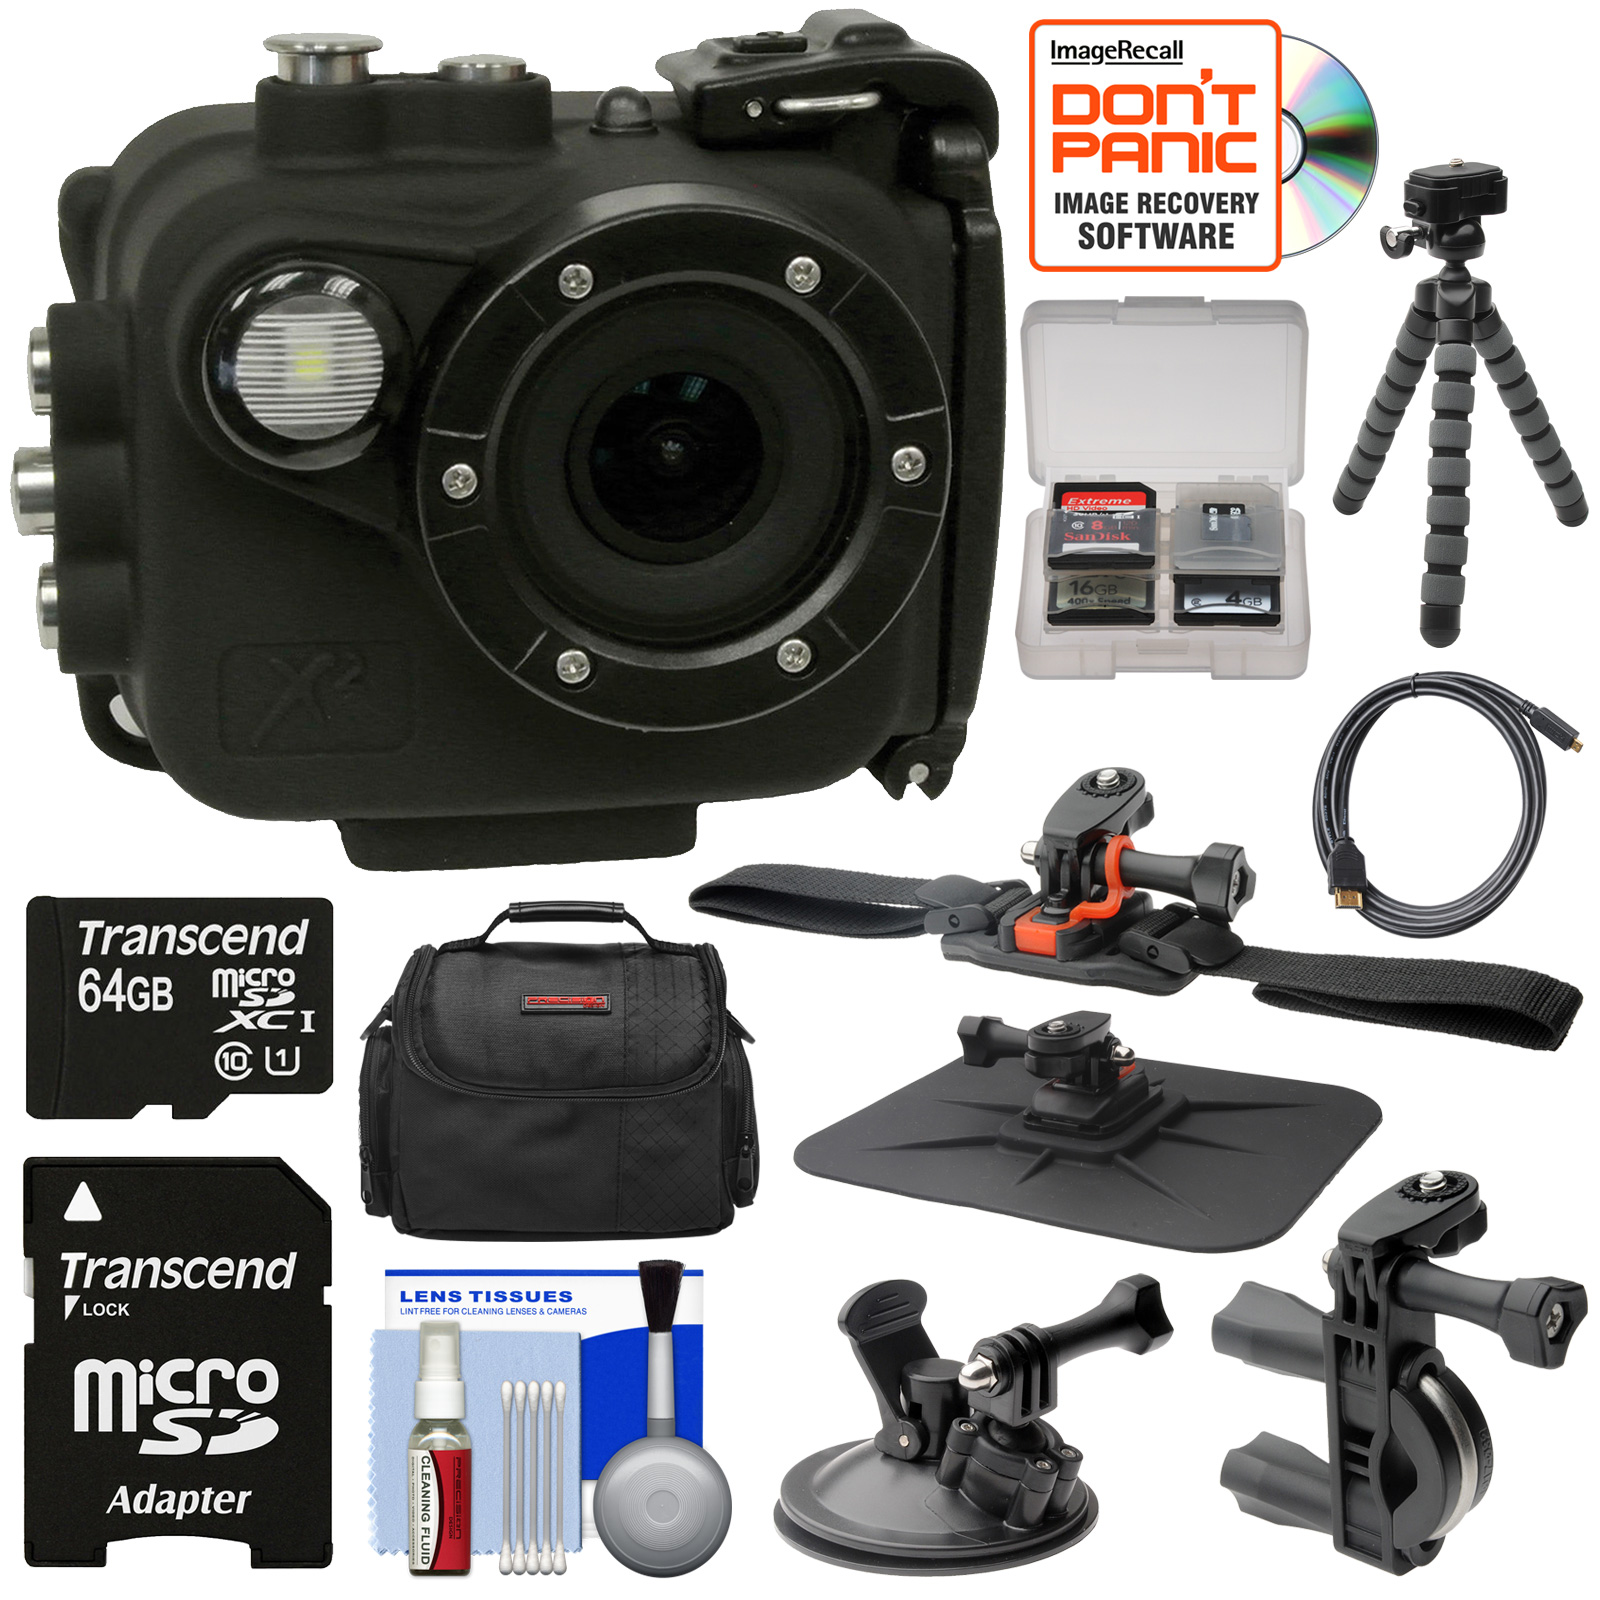 Intova X2 Marine Grade Wi-Fi HD Video Action Camera Camcorder & Video Light   64GB Card   Handlebar, Helmet, & Suction Cup Mounts   Case   Tripod Kit